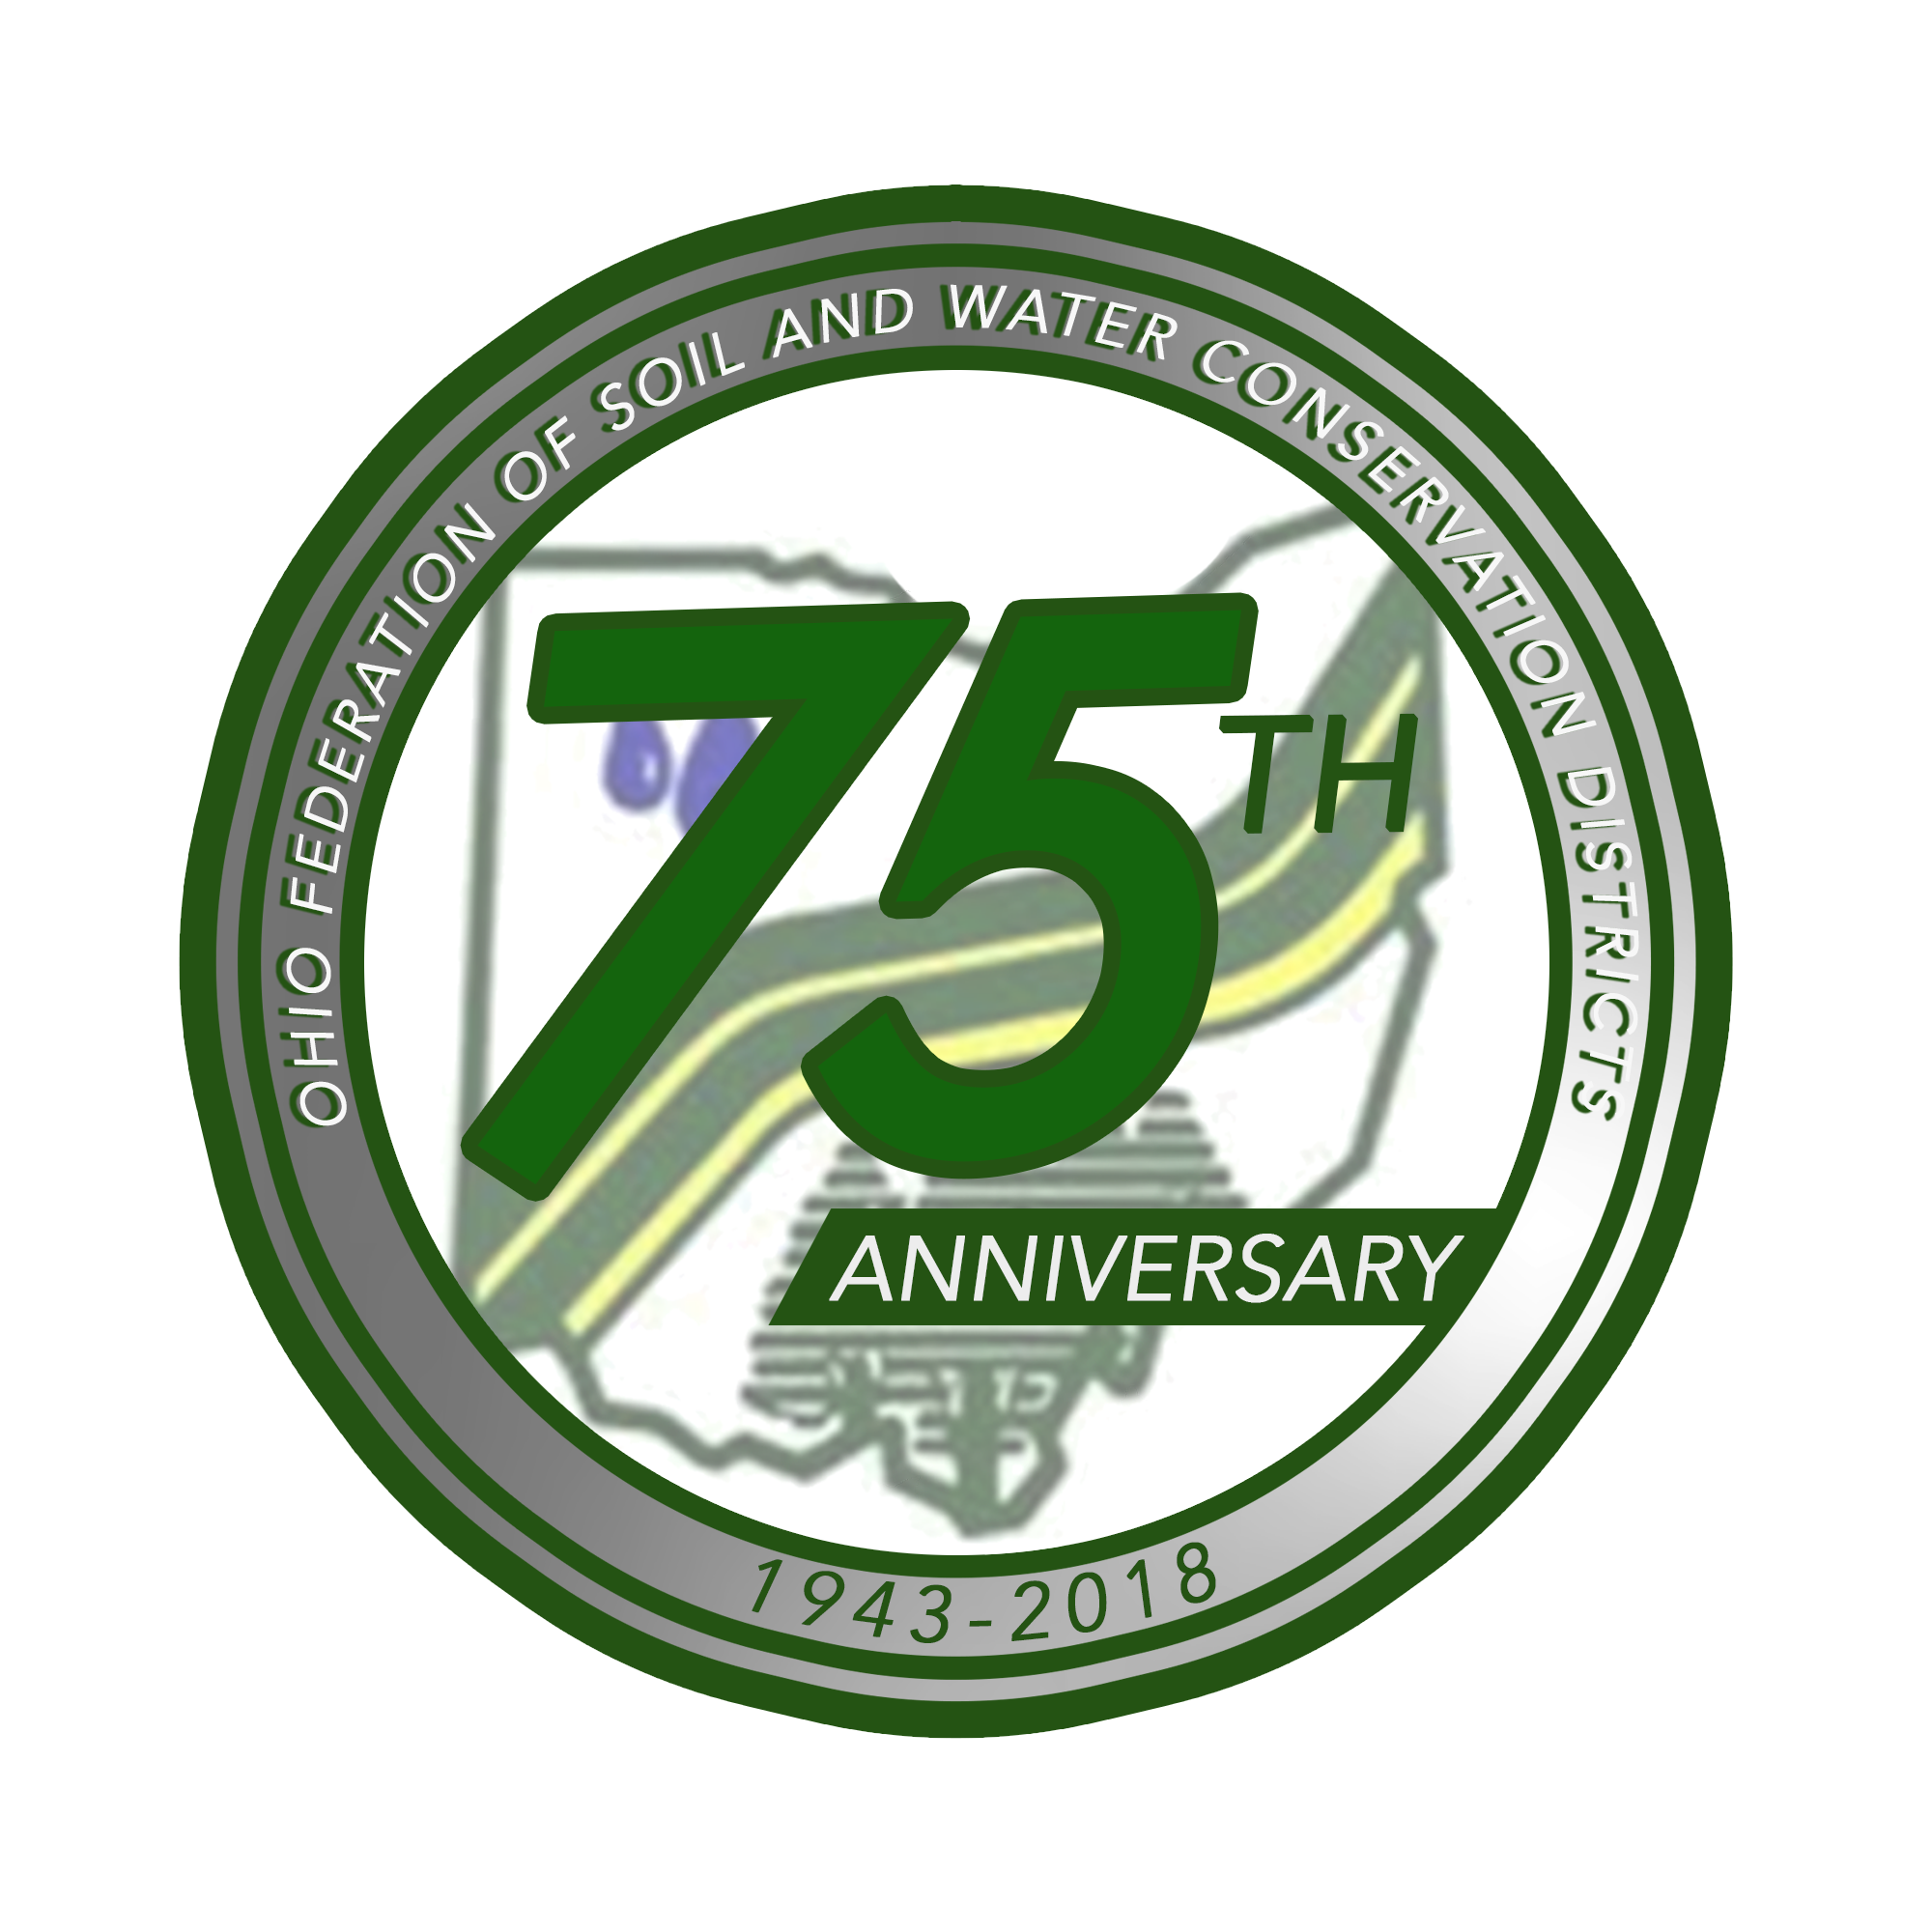 From Dust to Diamonds:  Commemorating 75 Years of Soil and Water Conservation